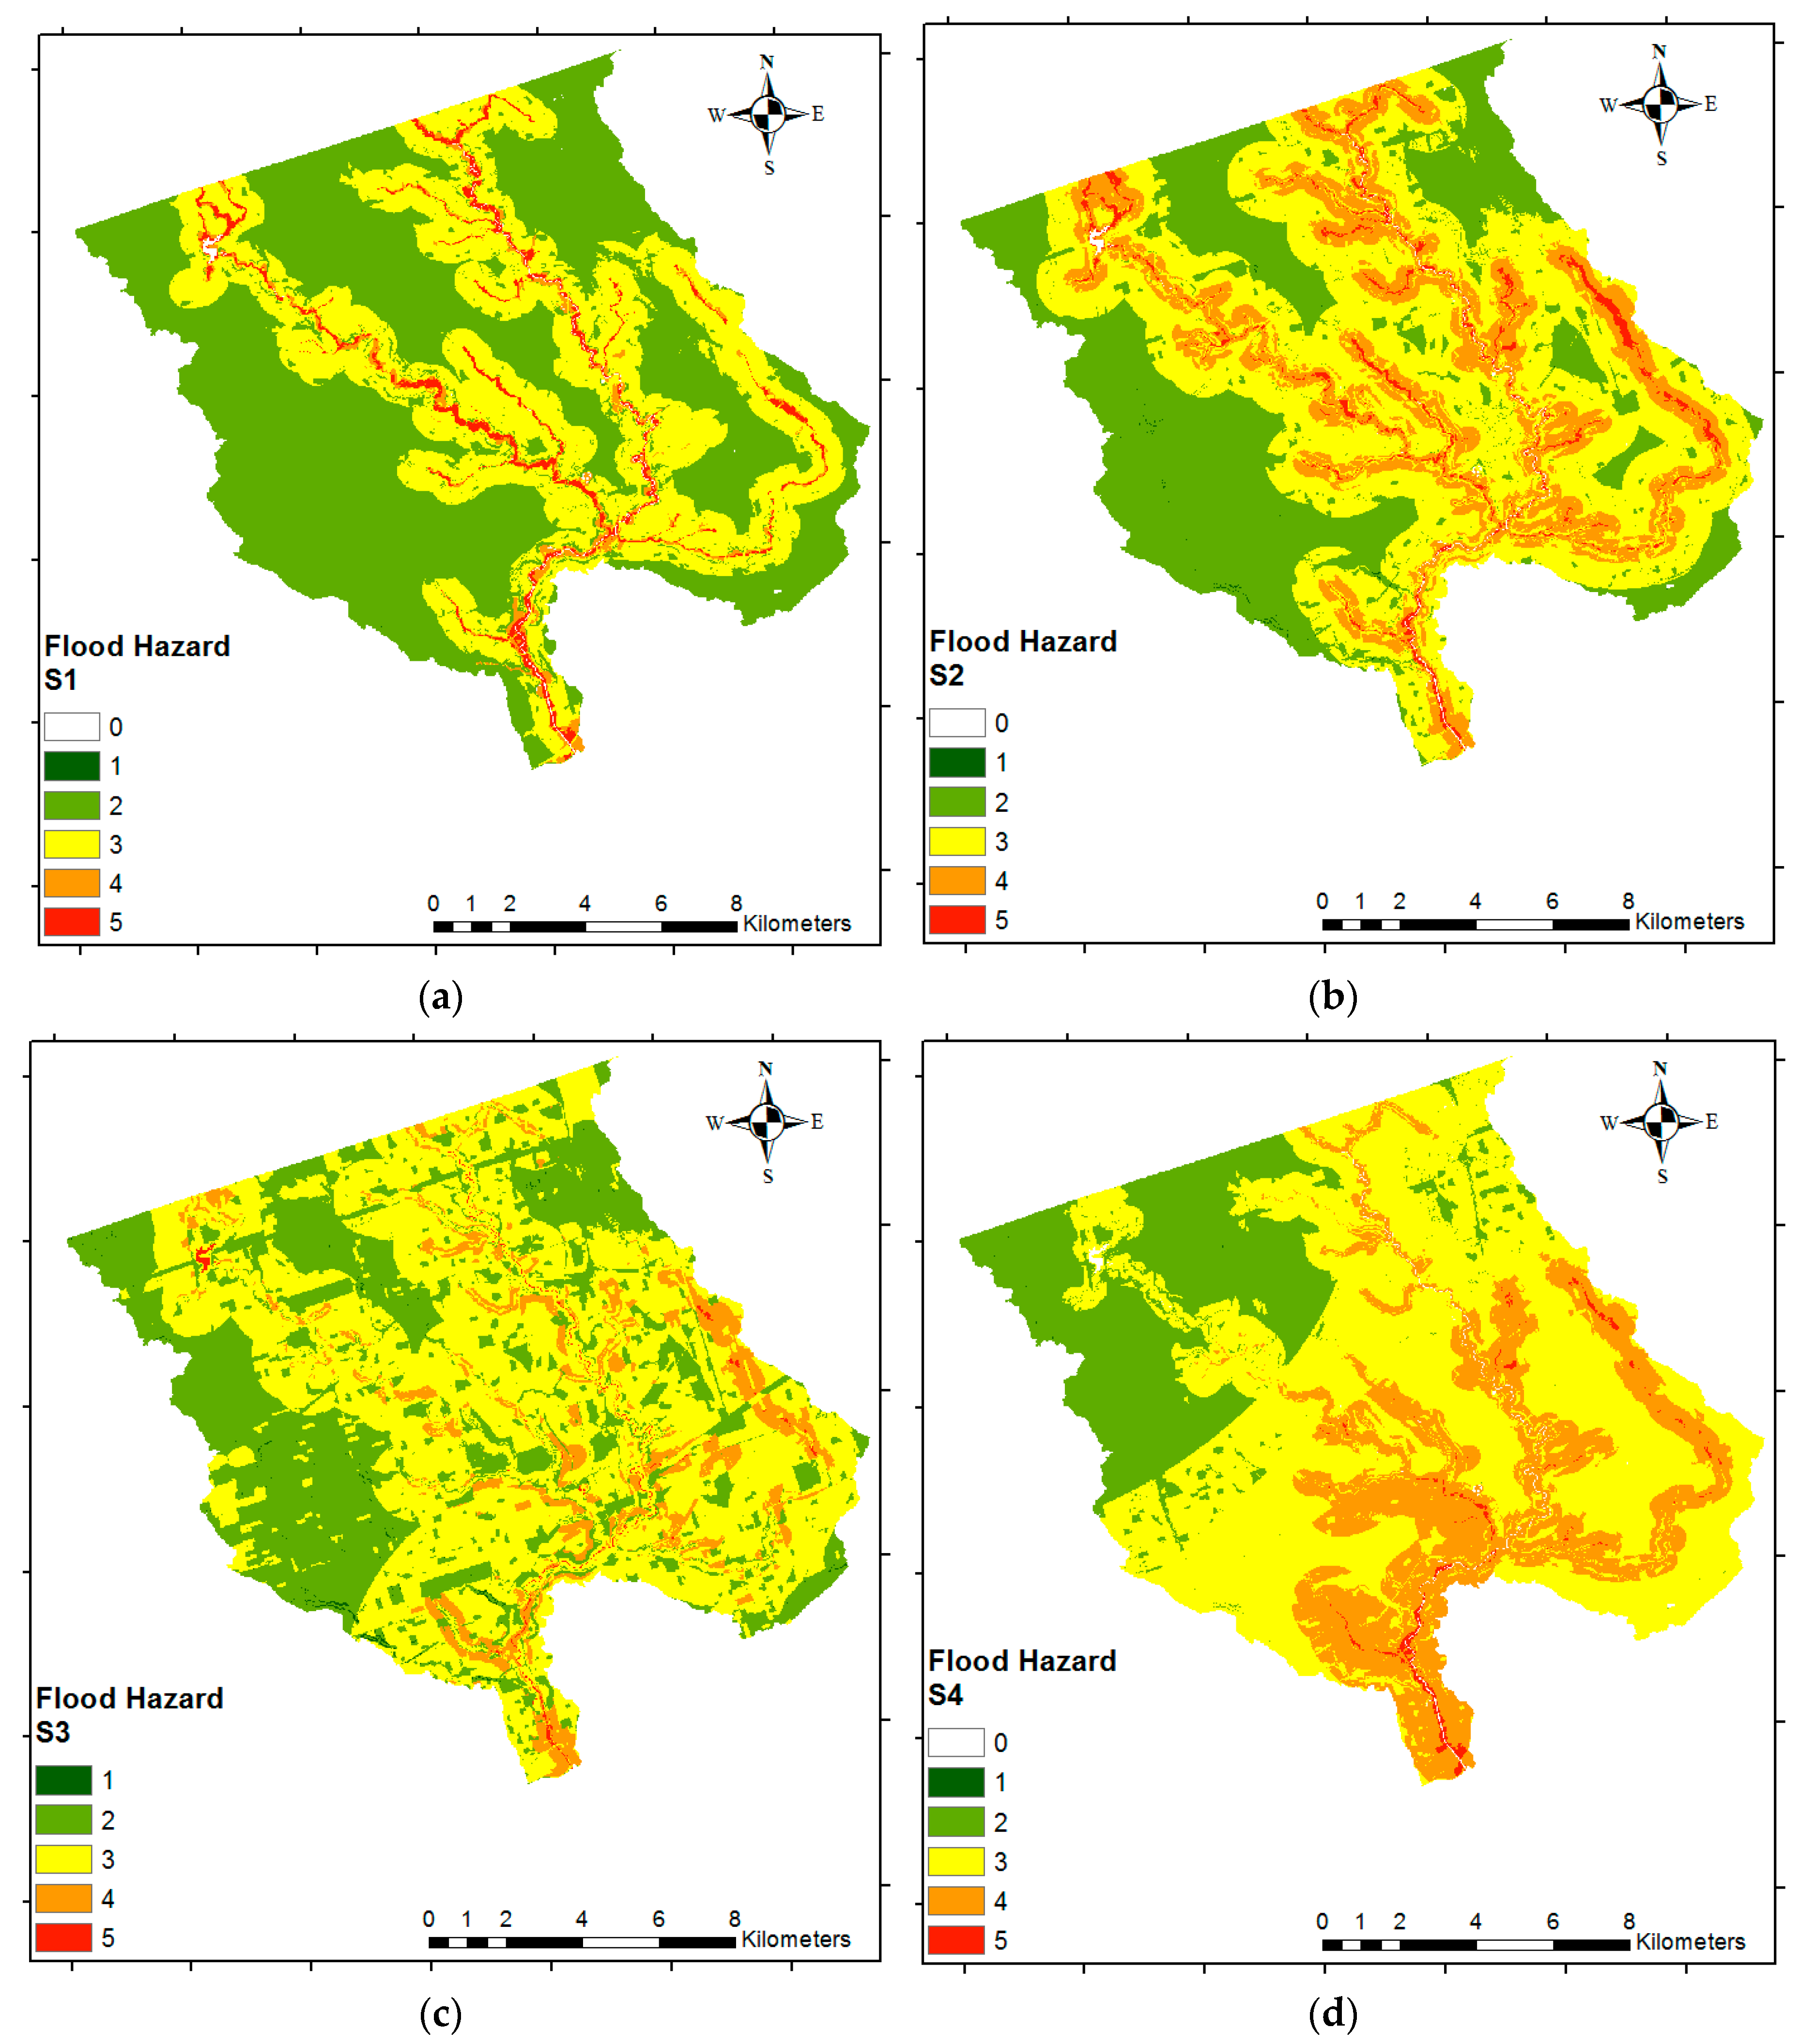 Geosciences | Free Full-Text | Flood Risk Mapping Using GIS ... on sialkot map, noaa weather map, county plat map, madison county floodplain map, kalamazoo michigan map, bangladesh climate map, contour lines on a map, global warming map, christian county missouri map, scott county il map, floodplain elevation map, bayonne crime map, bangladesh river map, switzerland climate map, area code map, texas floodplain map, annual precipitation map, climate change map, snow interactive map, data visualization map,